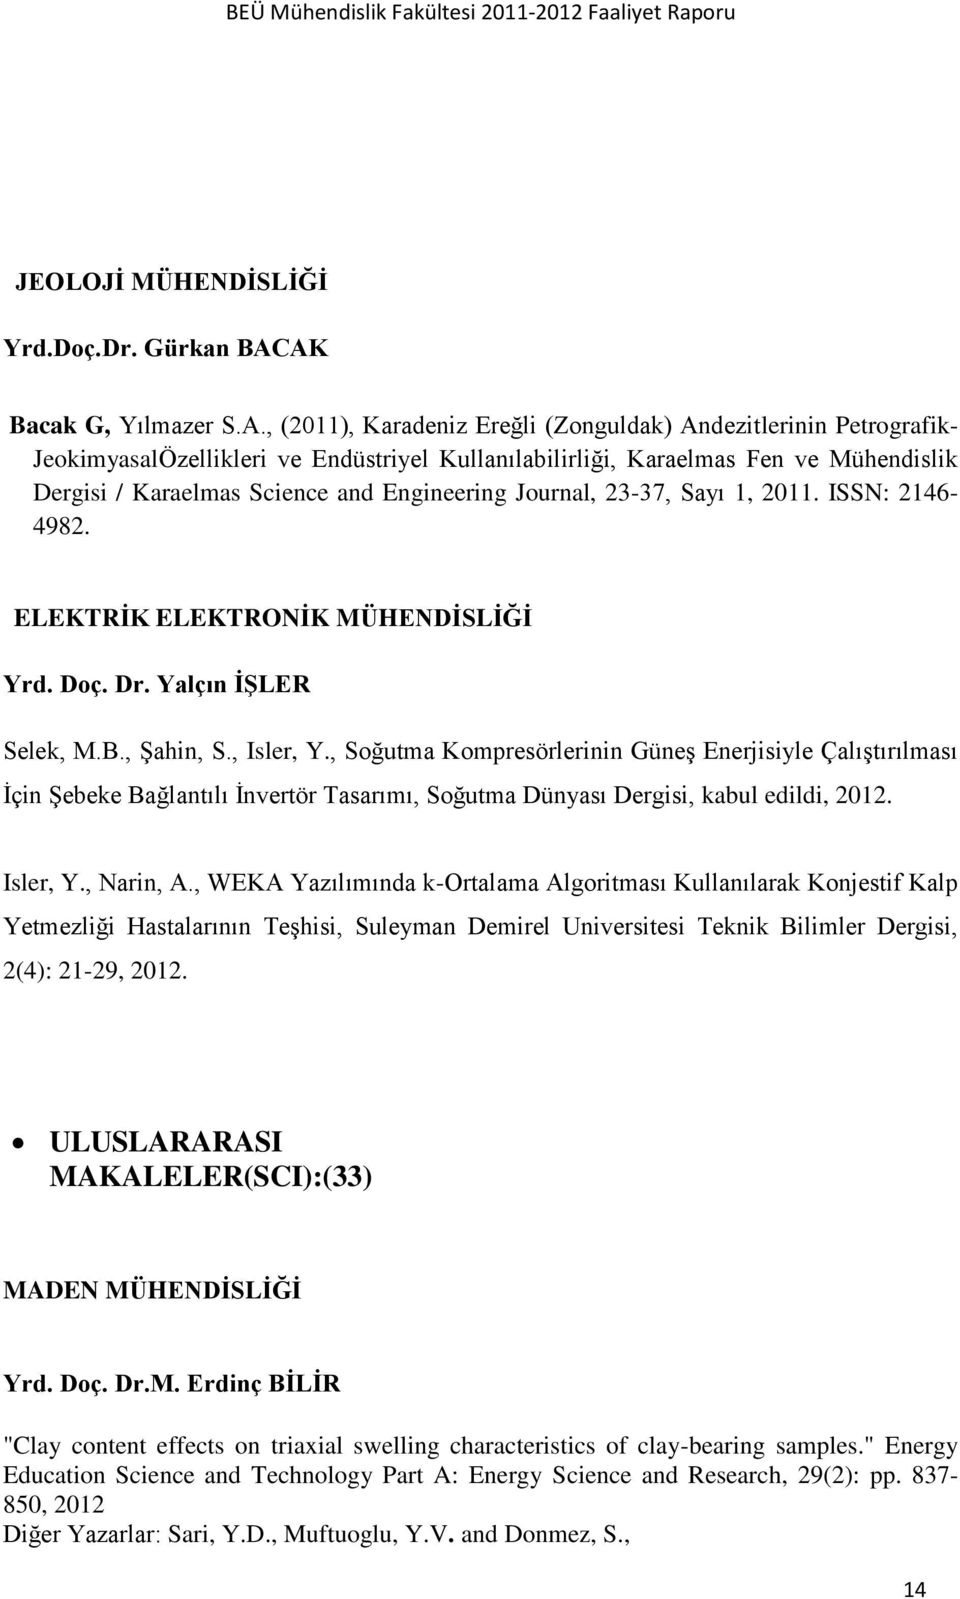 Science and Engineering Journal, 23-37, Sayı 1, 2011. ISSN: 2146-4982. ELEKTRİK ELEKTRONİK MÜHENDİSLİĞİ Yrd. Doç. Dr. Yalçın İŞLER Selek, M.B., Şahin, S., Isler, Y.